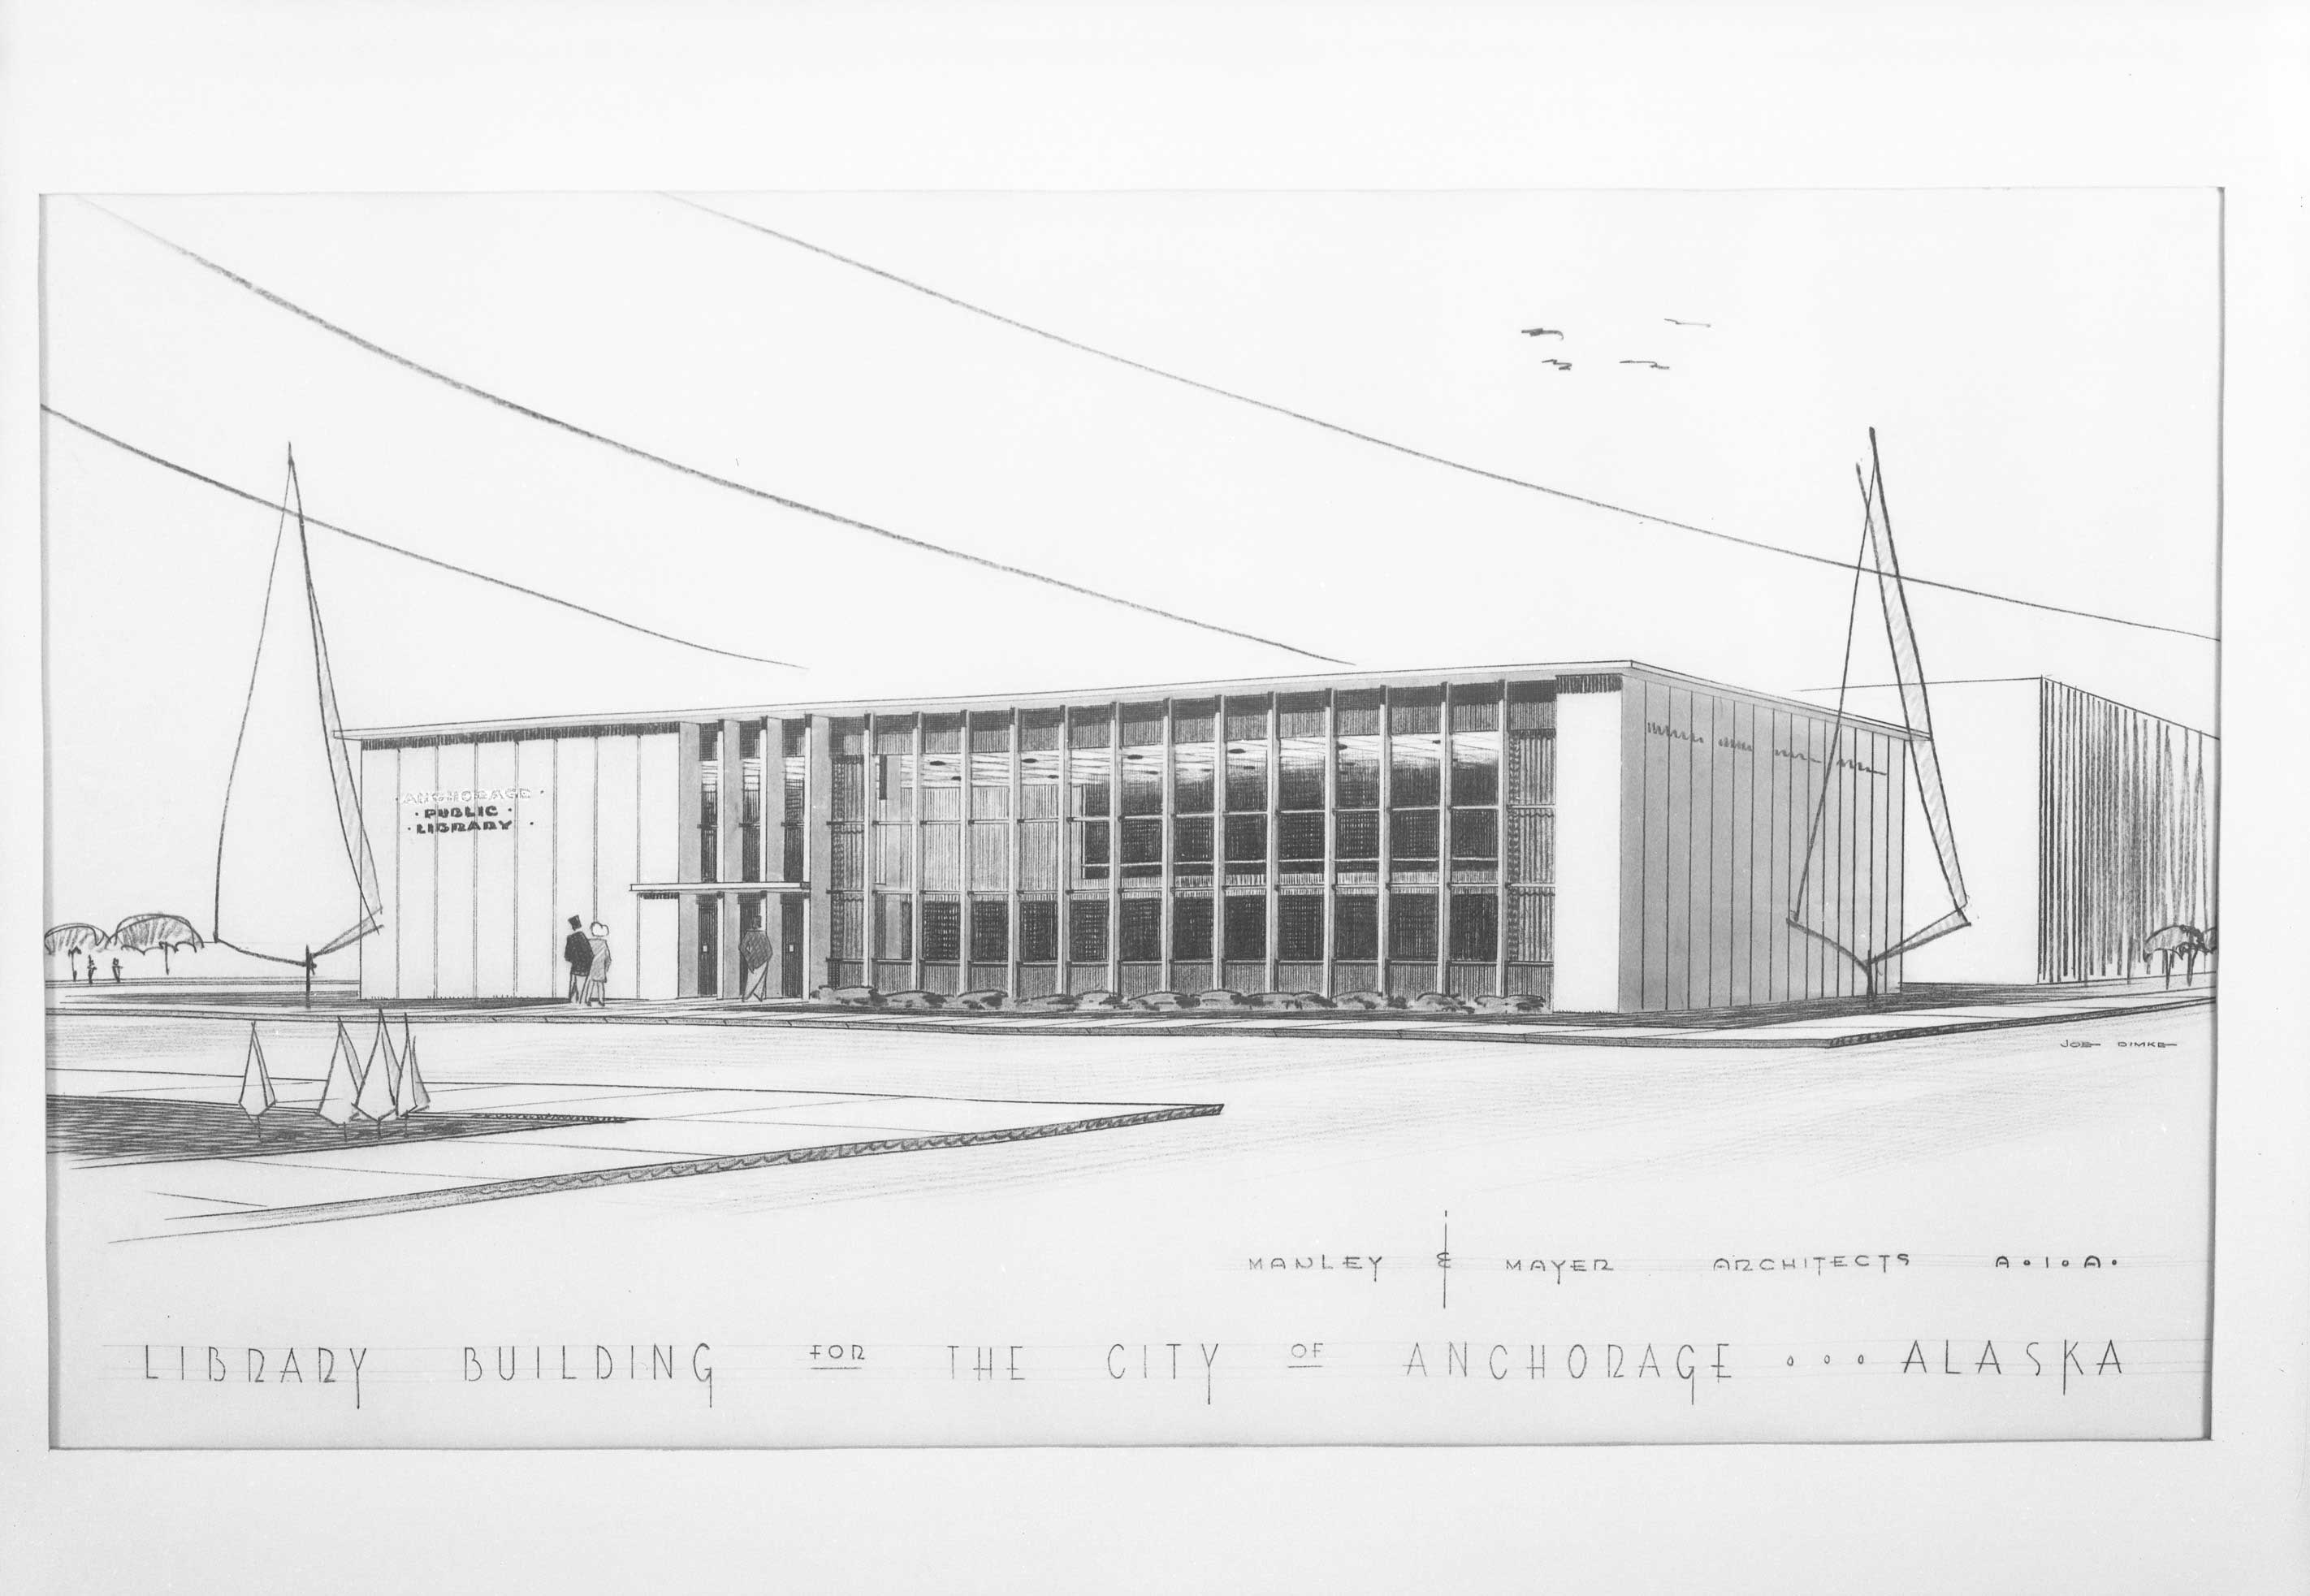 Manley william a alaska history architectural drawing of the original zj loussac library 1953 opened in 1955 malvernweather Images